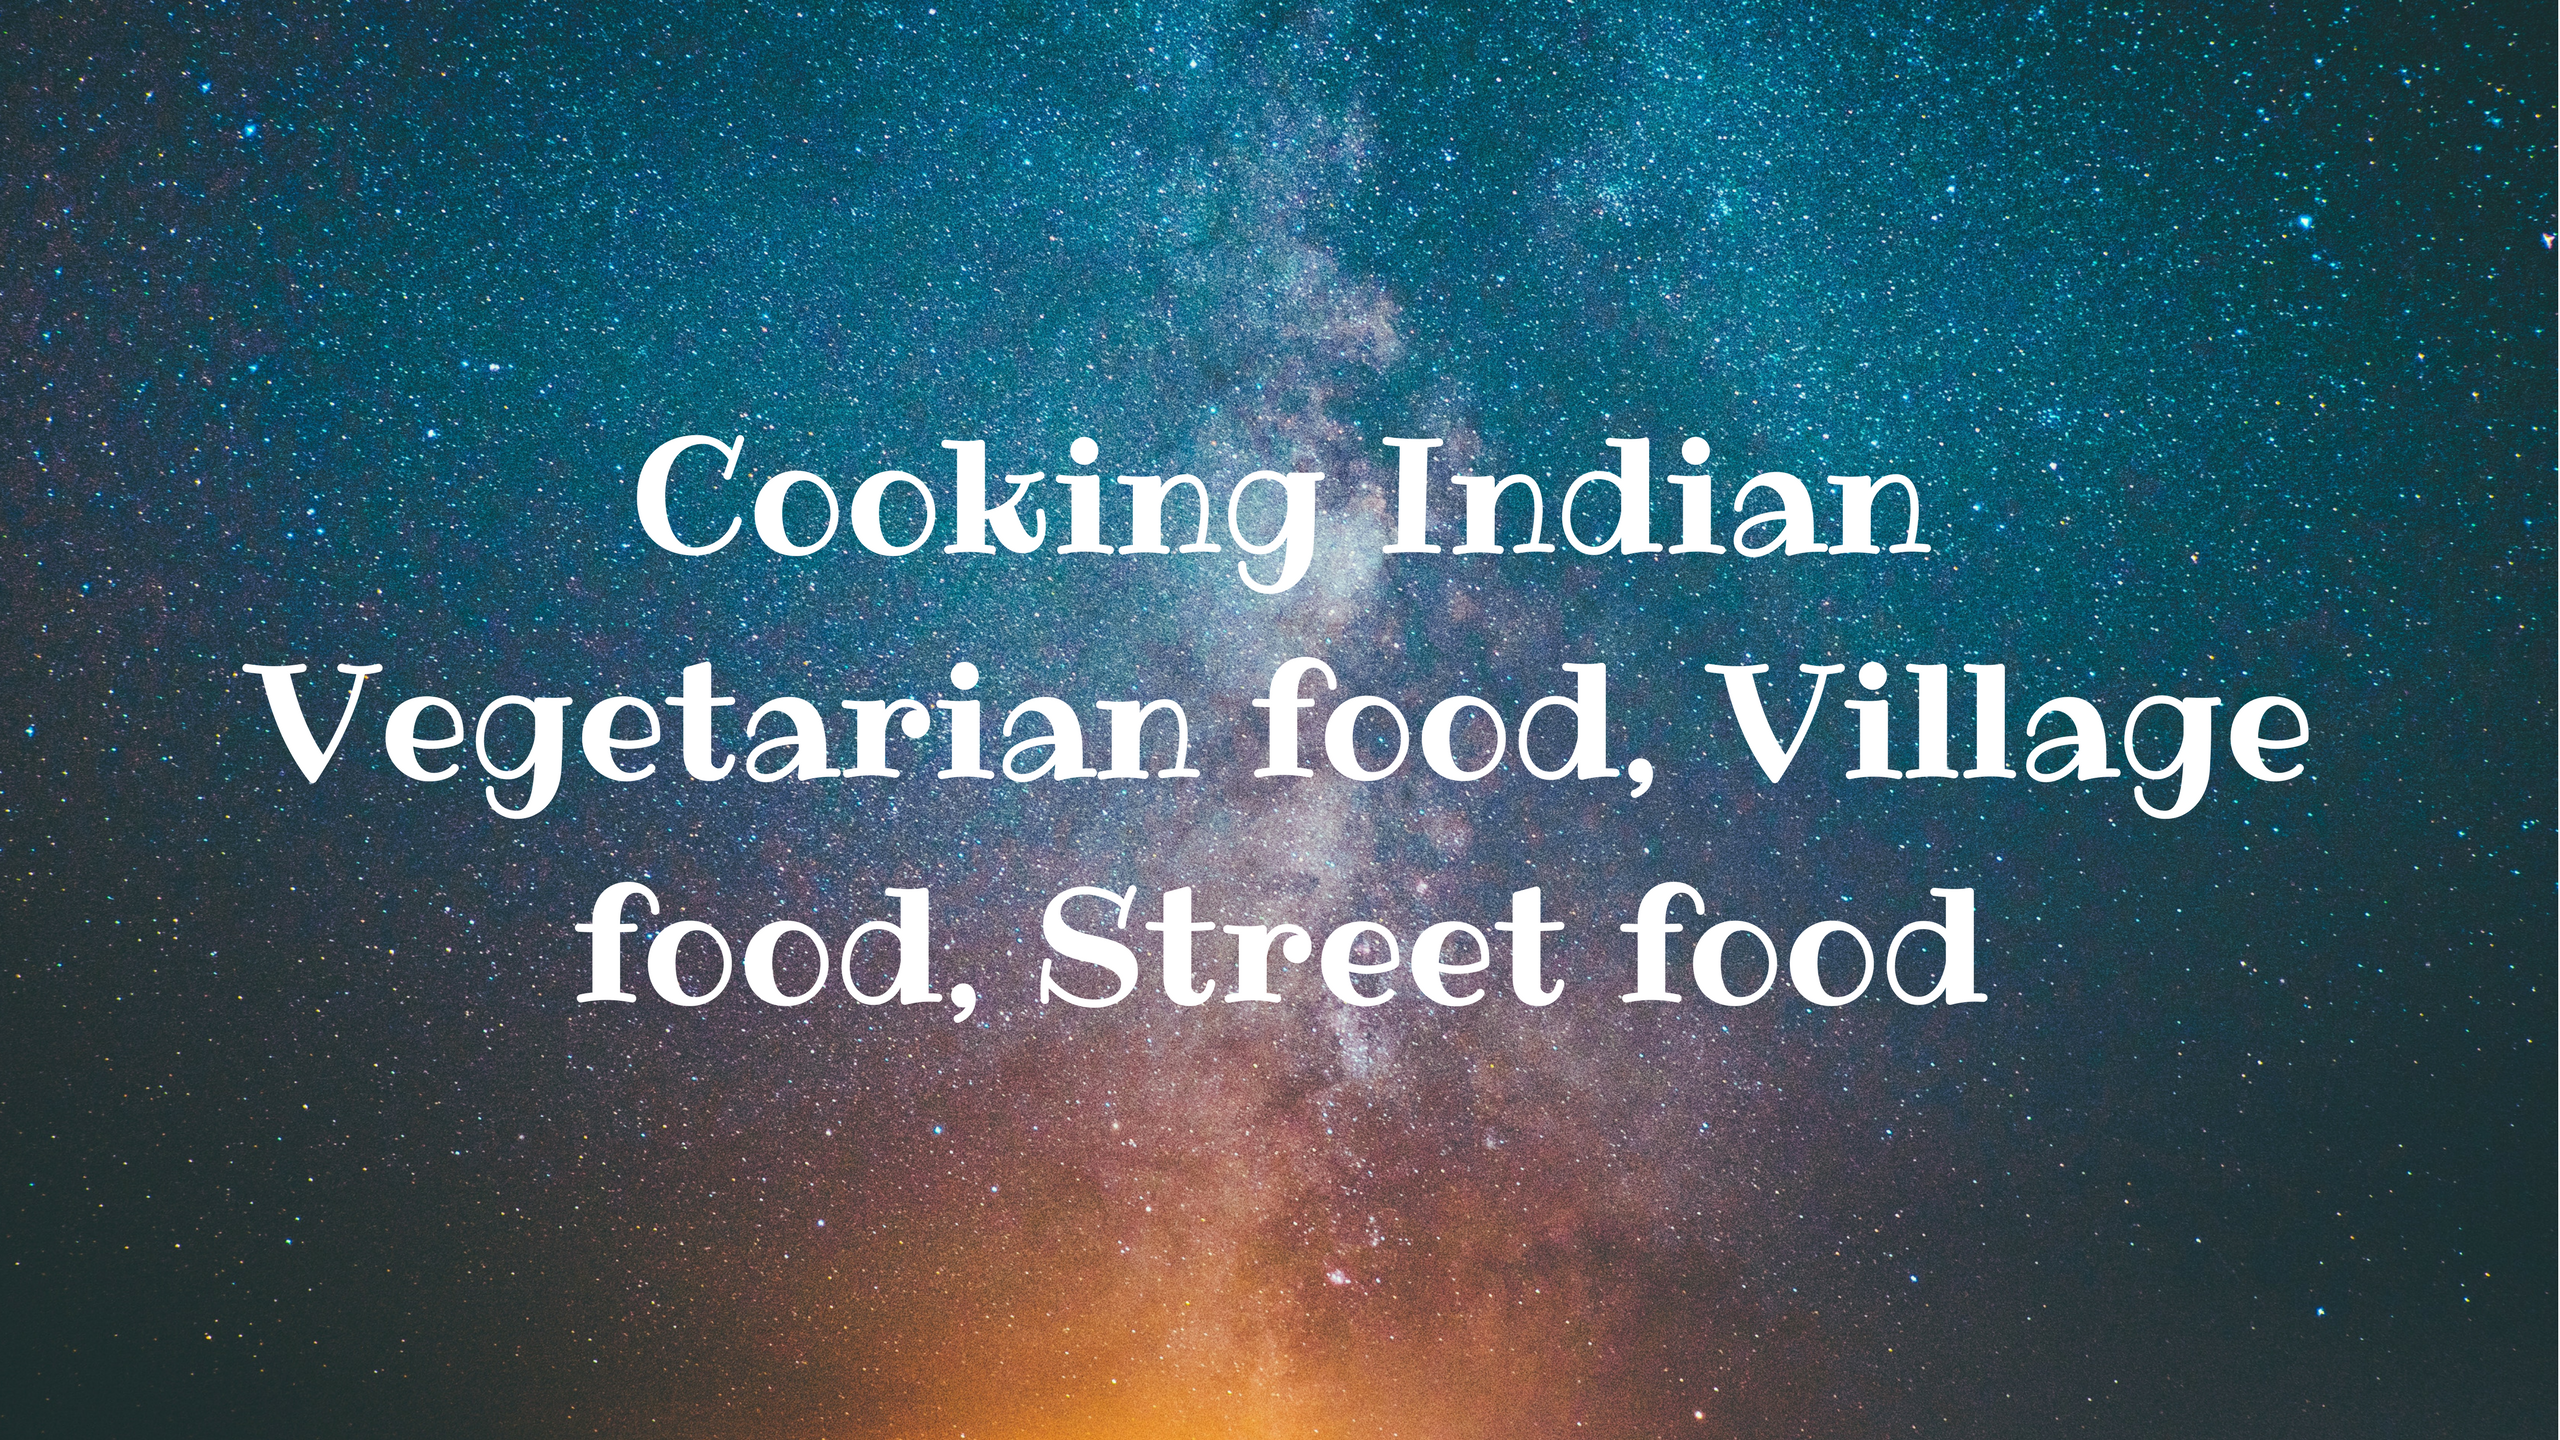 Cooking Indian Vegetarian food, Village food, Street food